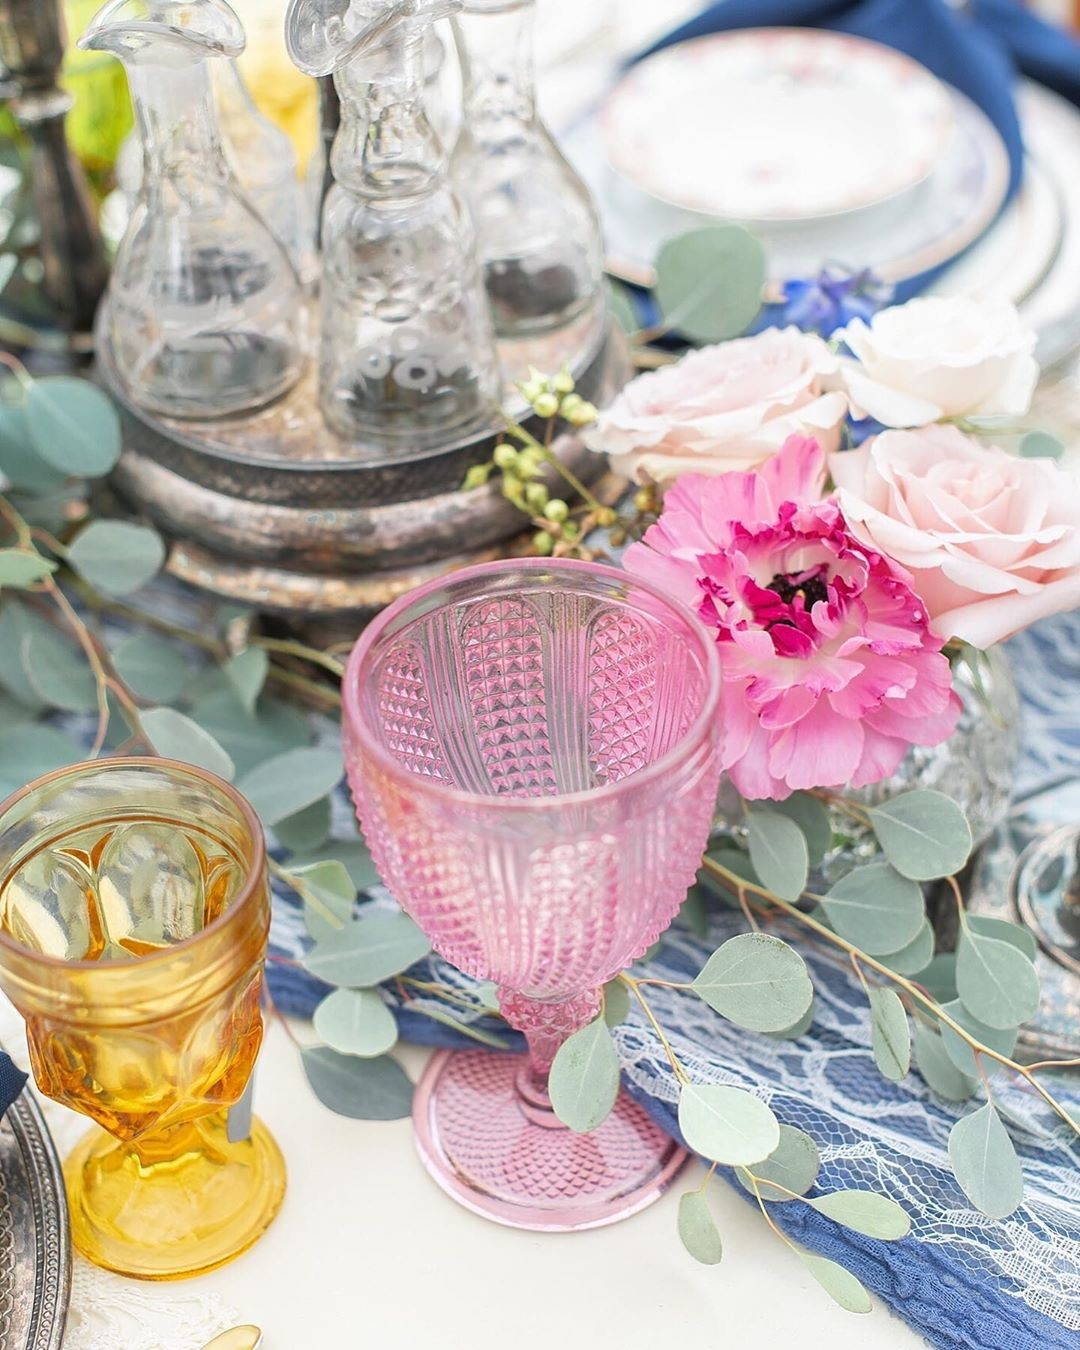 We love the mismatched glass trend! It added such a fun, whimsical vibe to our table setting!